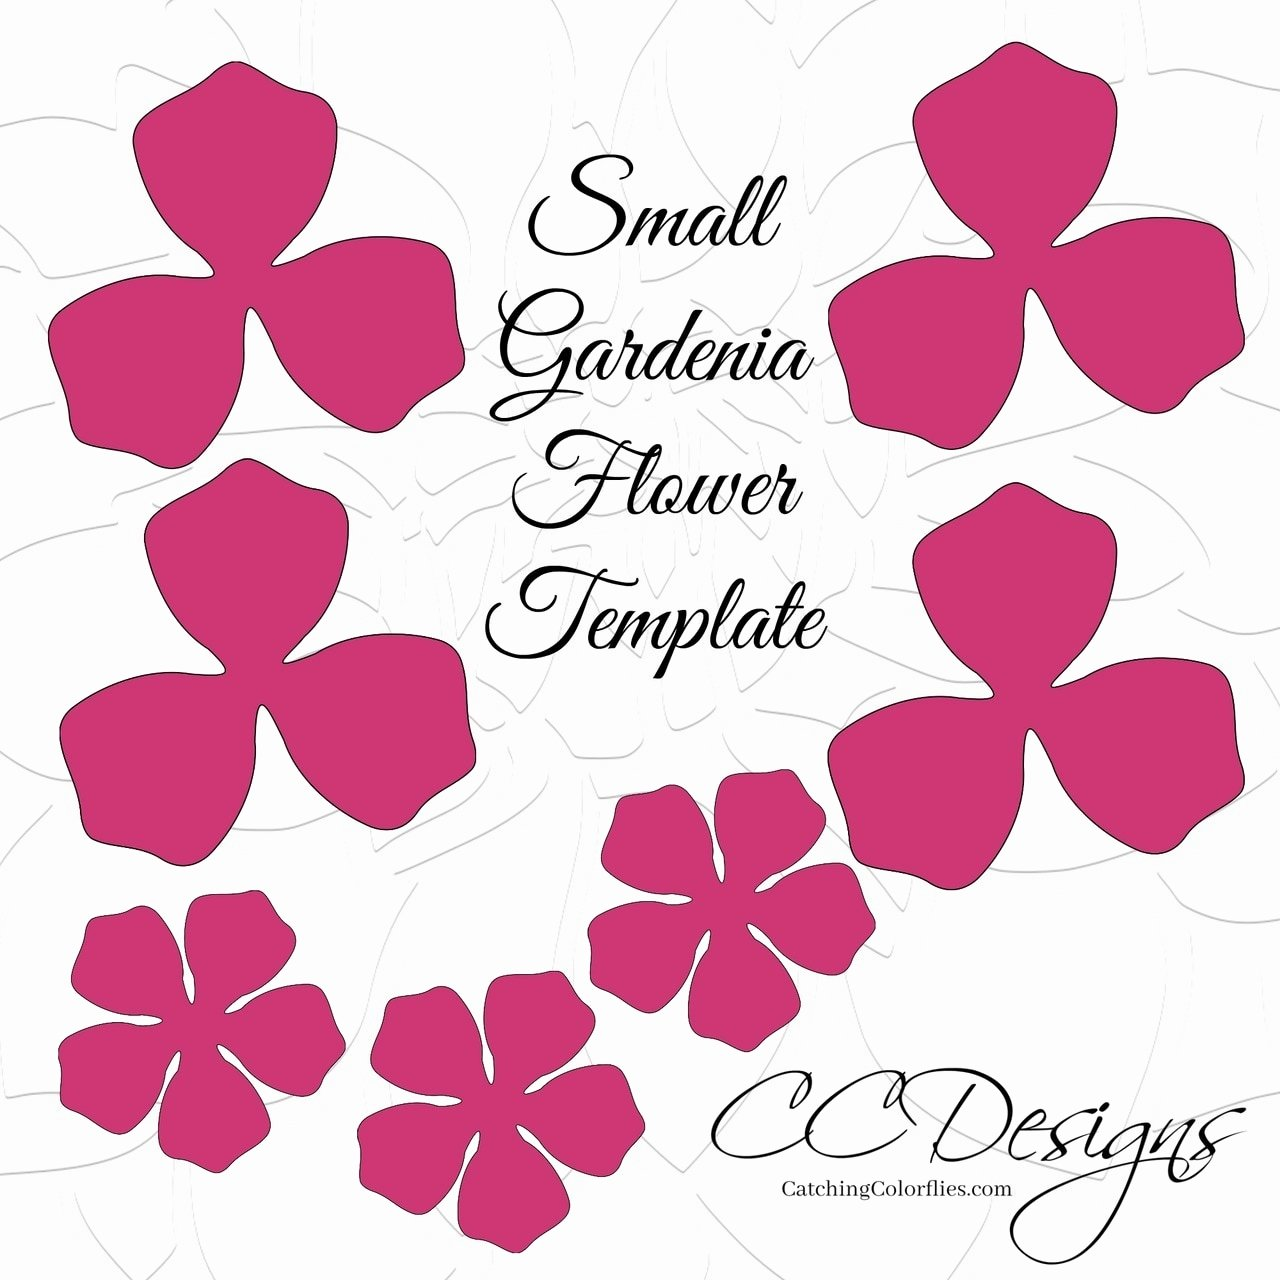 Small Paper Flower Templates Inspirational Small Gardenia Paper Flower Template Catching Colorlfies